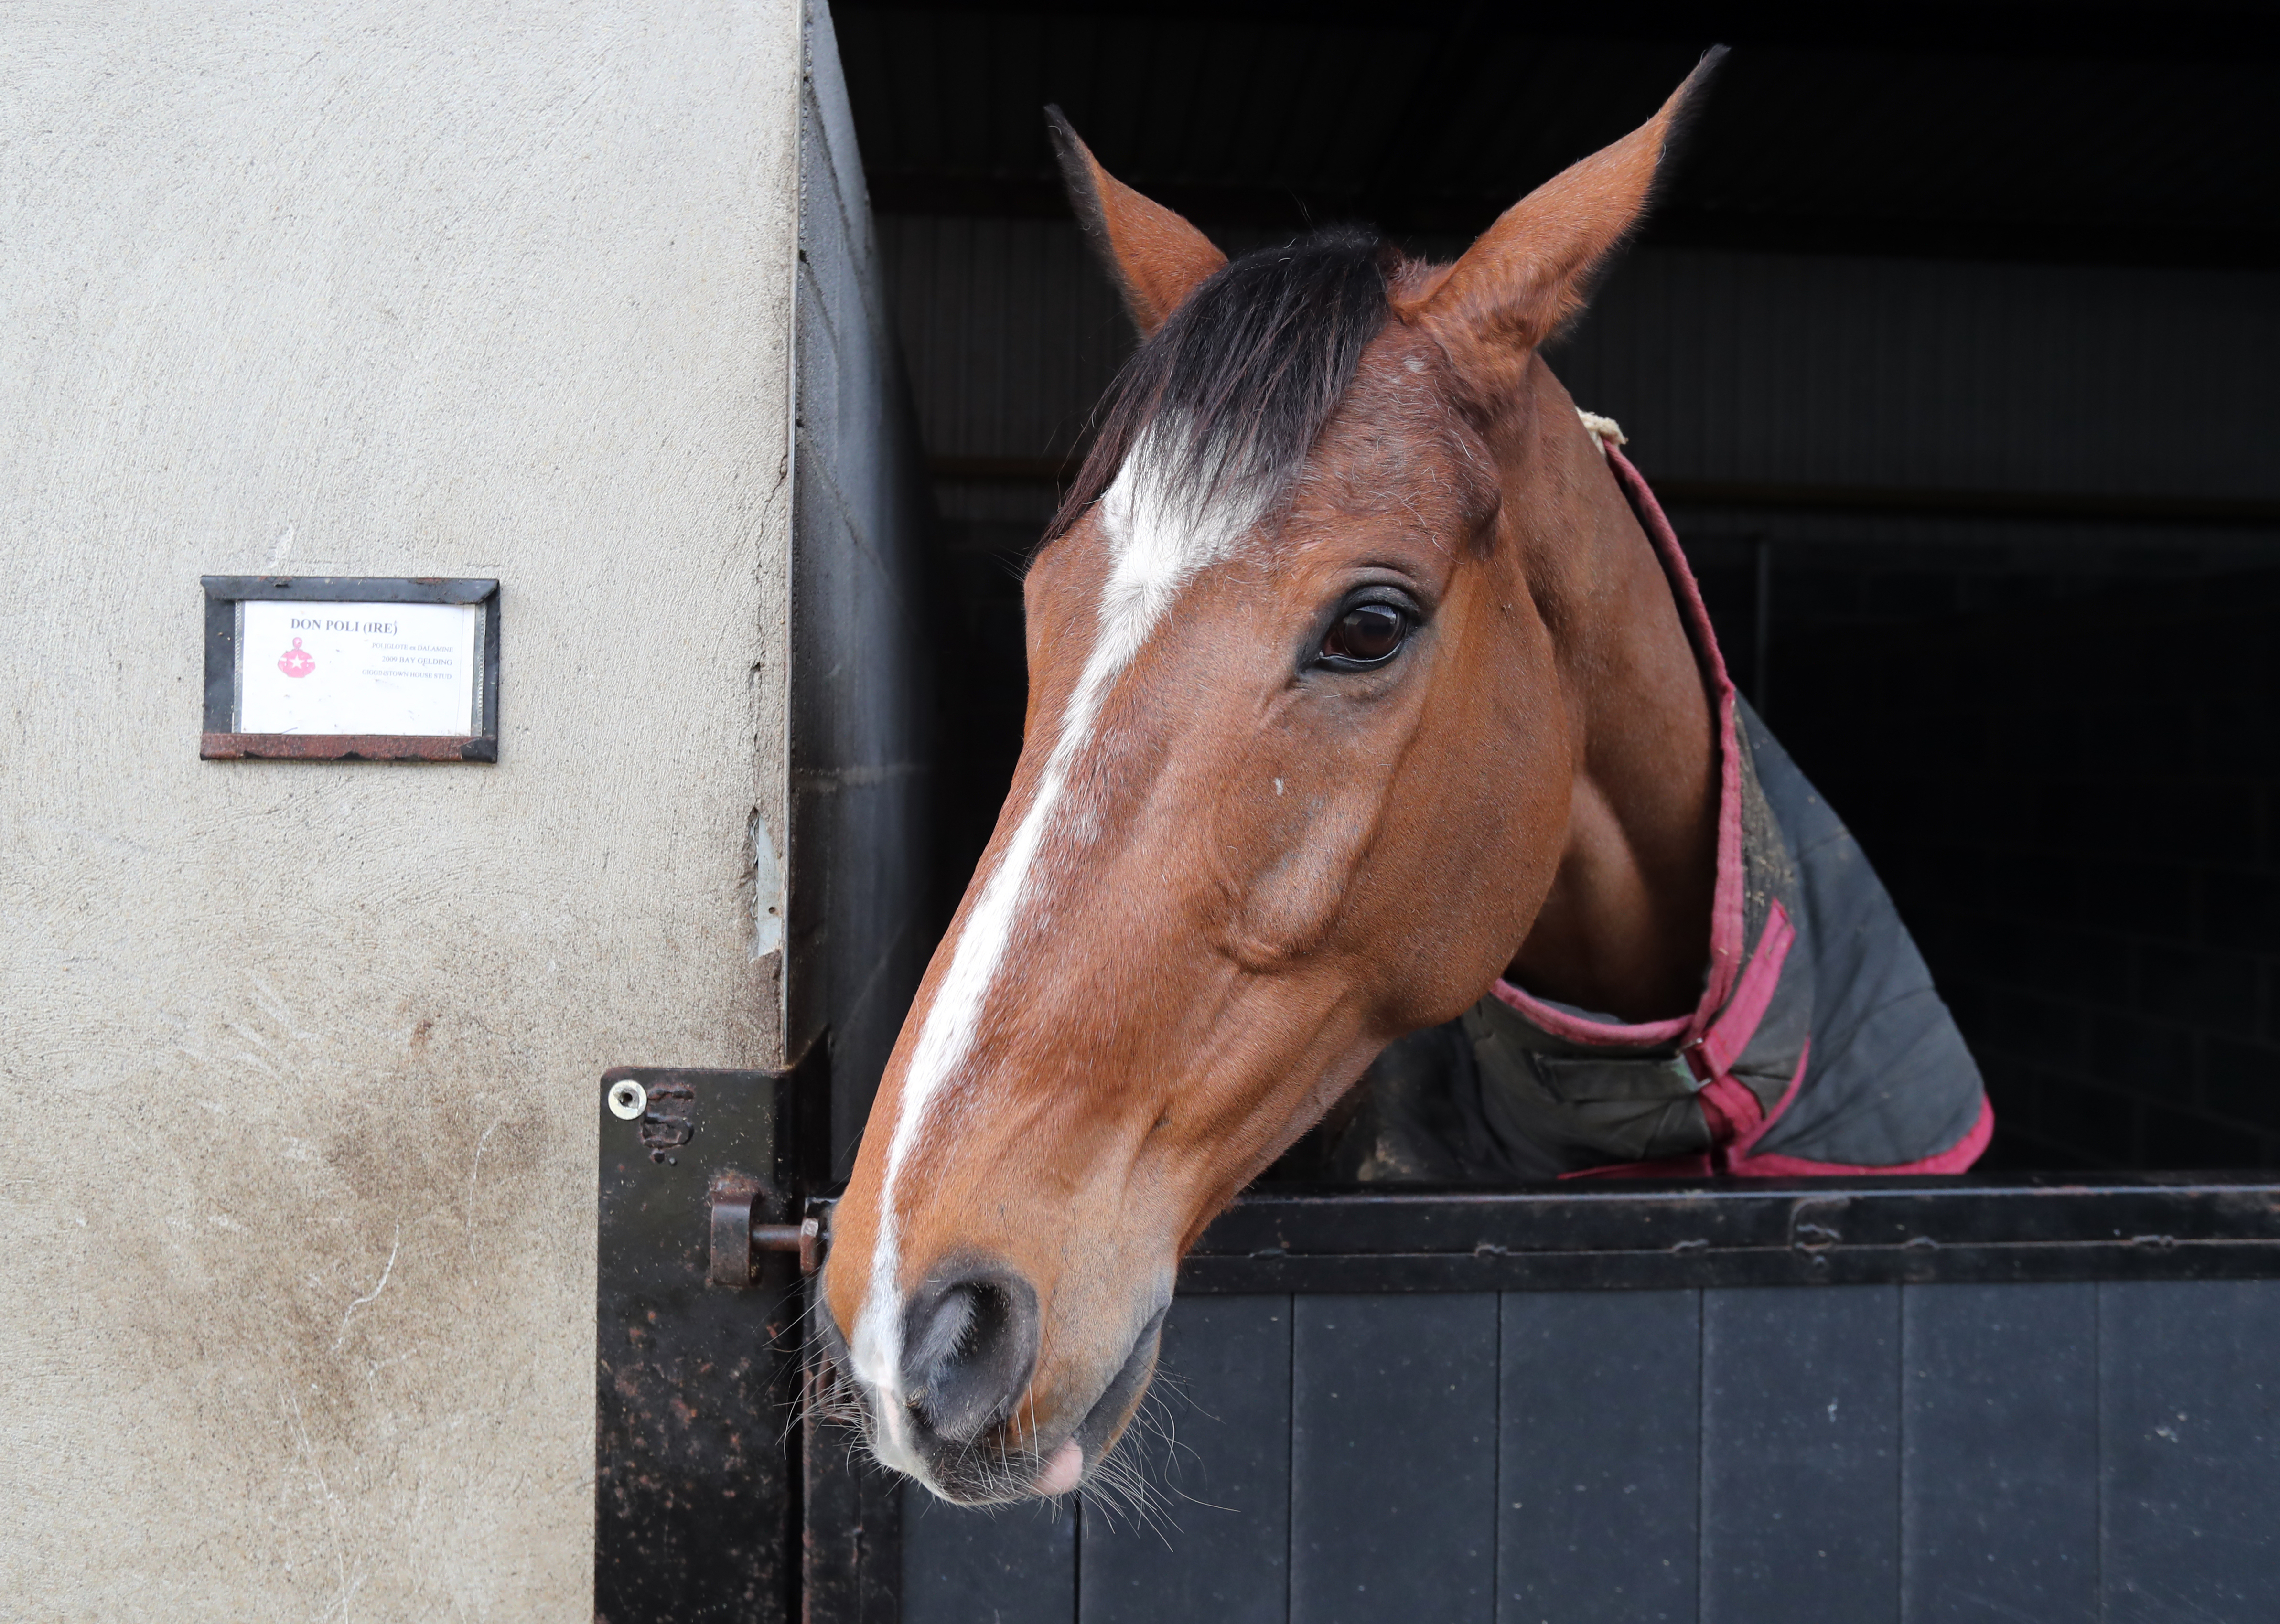 Don Poli is finally back in action at Aintree